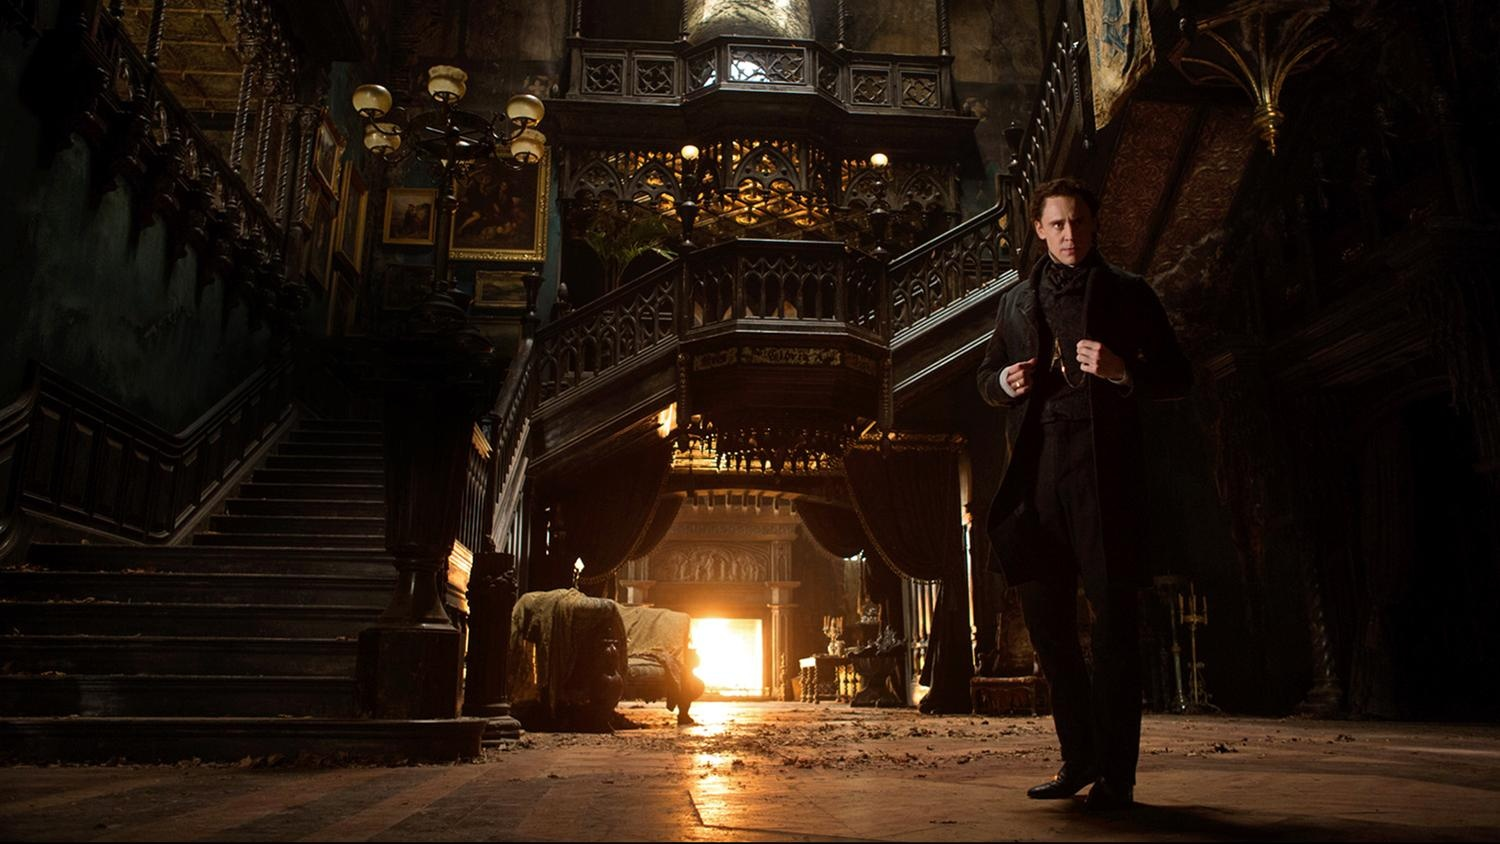 Crimson Peak And How We're Watching Movies The Wrong Way